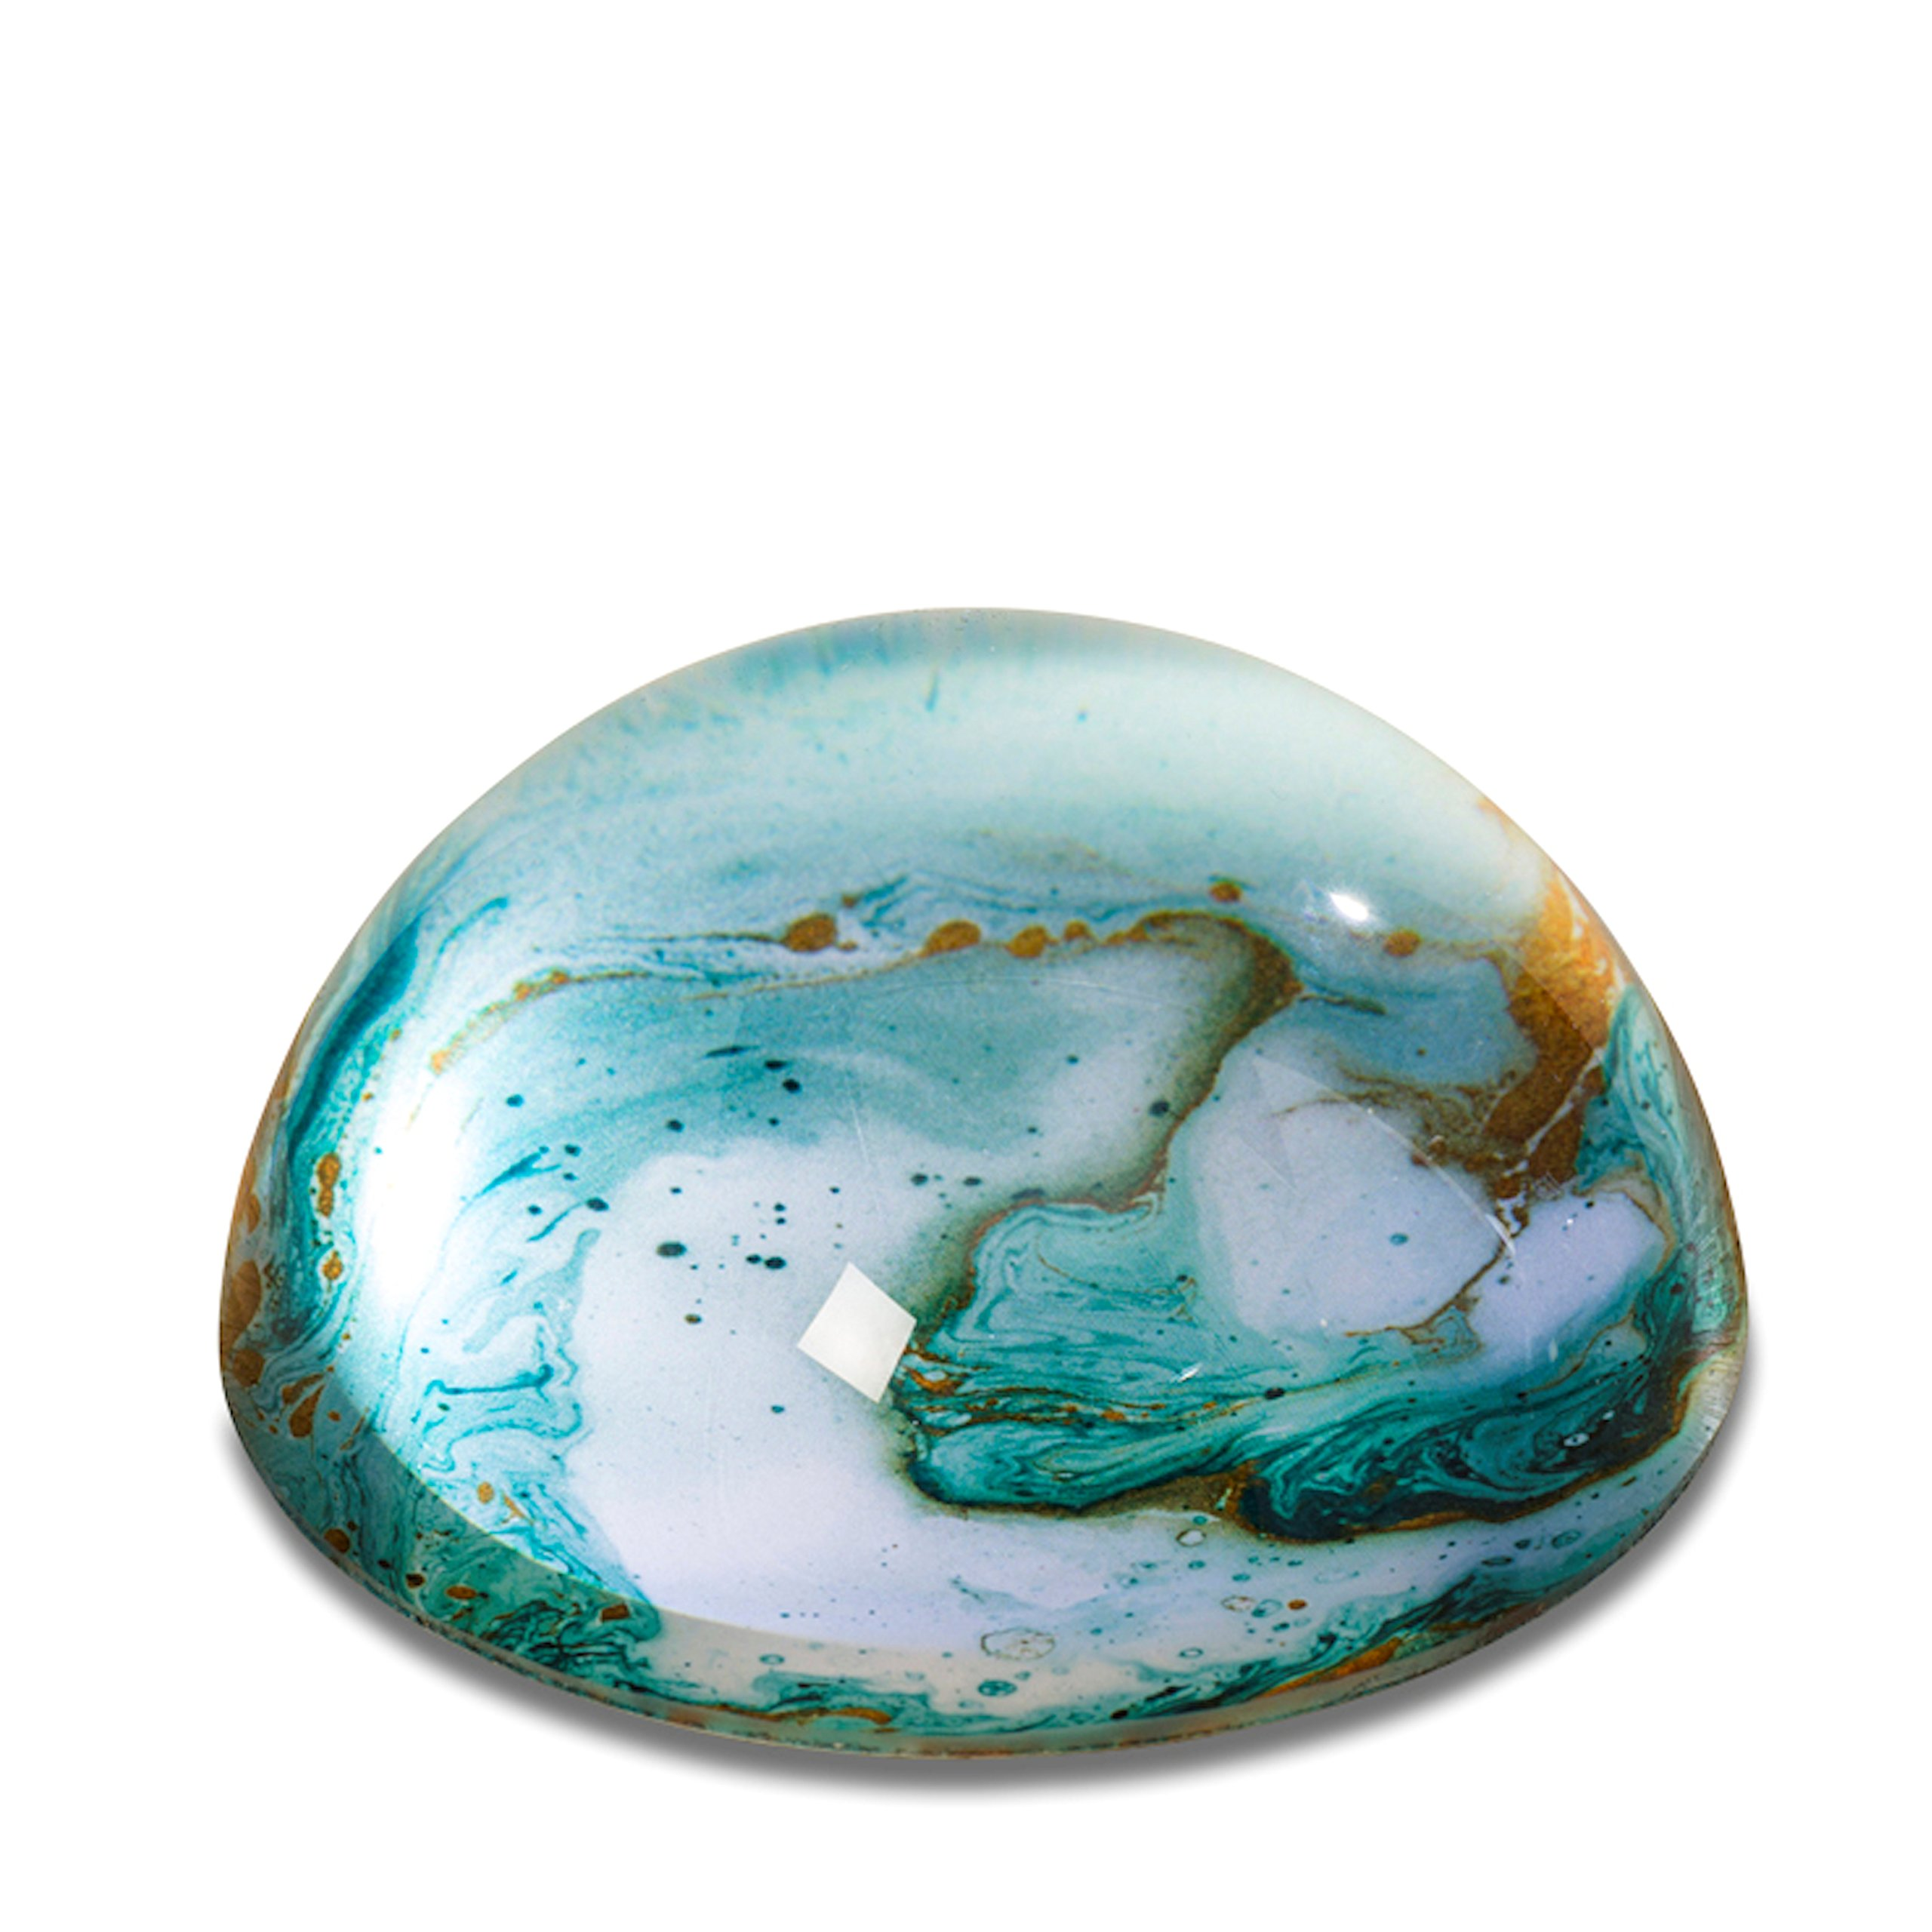 The Swirling Surf Paperweight, Clear Glass Dome, Aqua Marine Green and White, Handcrafted Art Object, 3 Inch Diameter, Hemi Sphere, Velvet Coated Flat Bottom by WHW